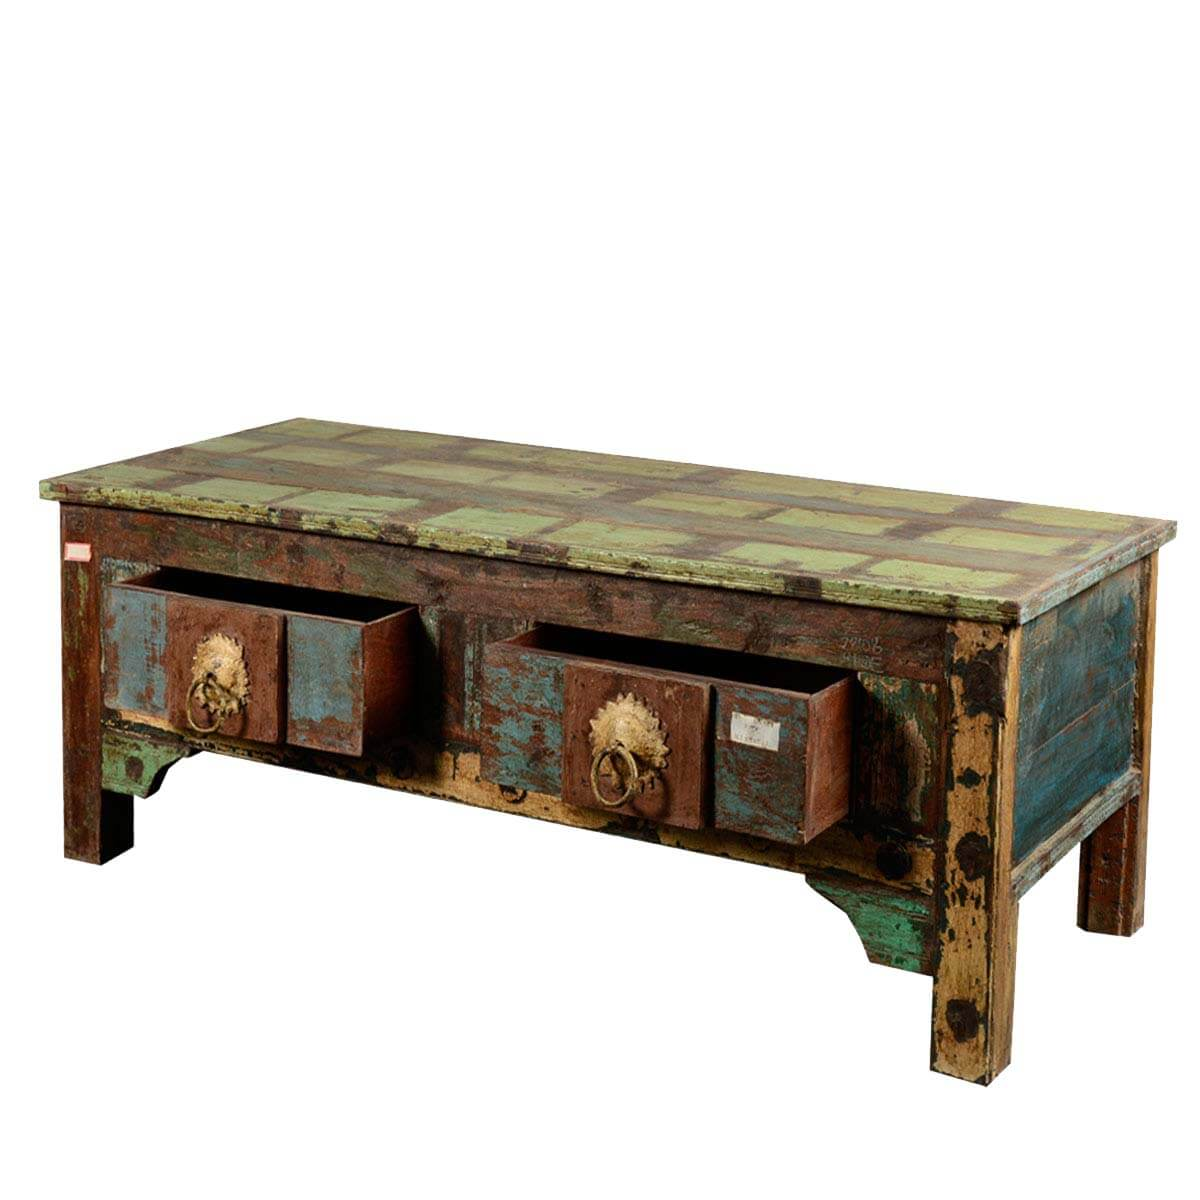 Rustic reclaimed wood sea comber coffee table with storage drawers Recycled wood coffee table